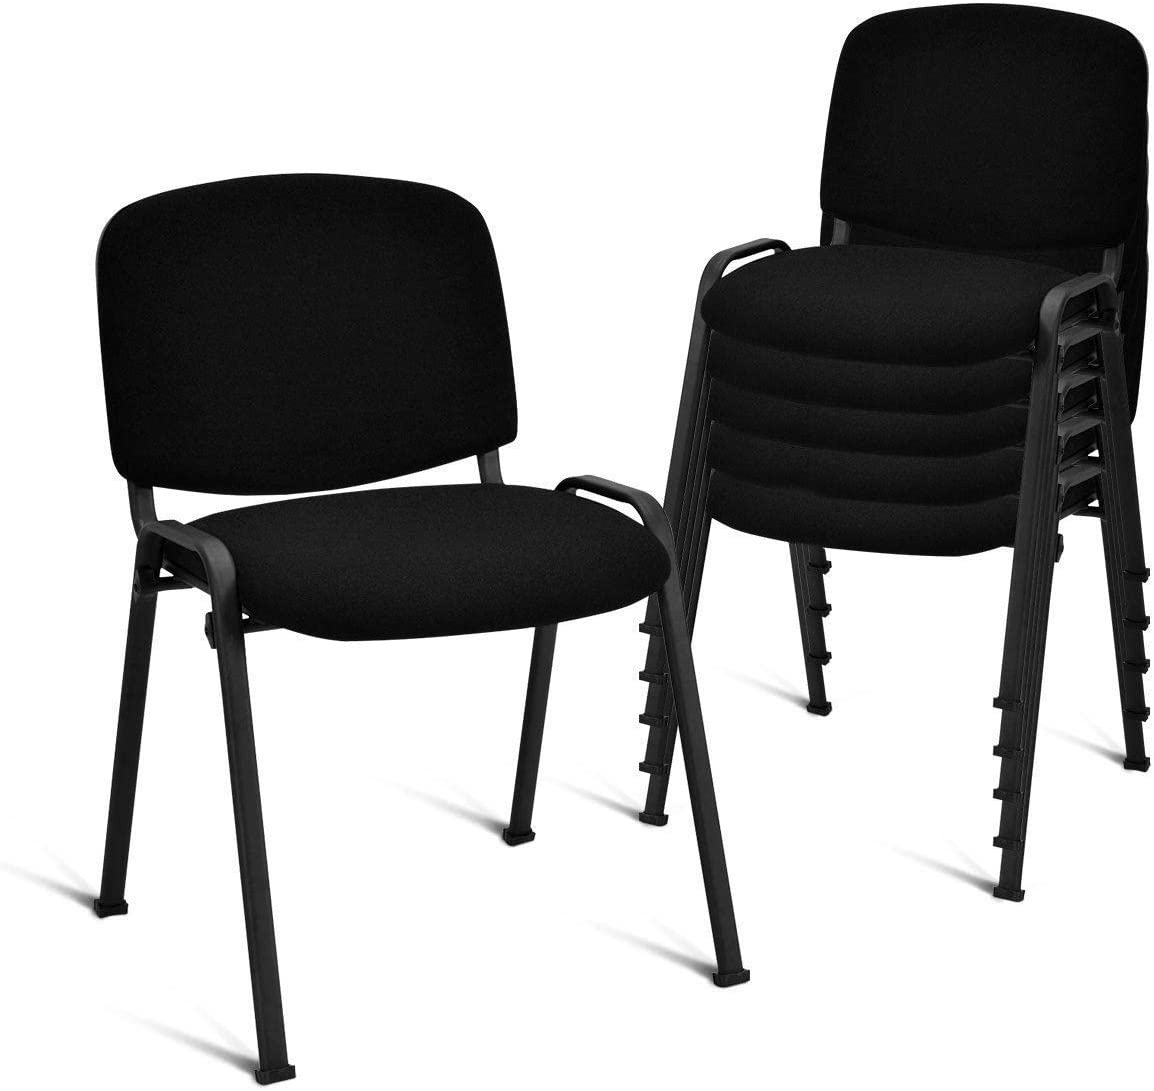 Casart 5 PCS Conference Chair Elegant Design Office Waiting Room Guest Reception Dining Chairs Furniture Set